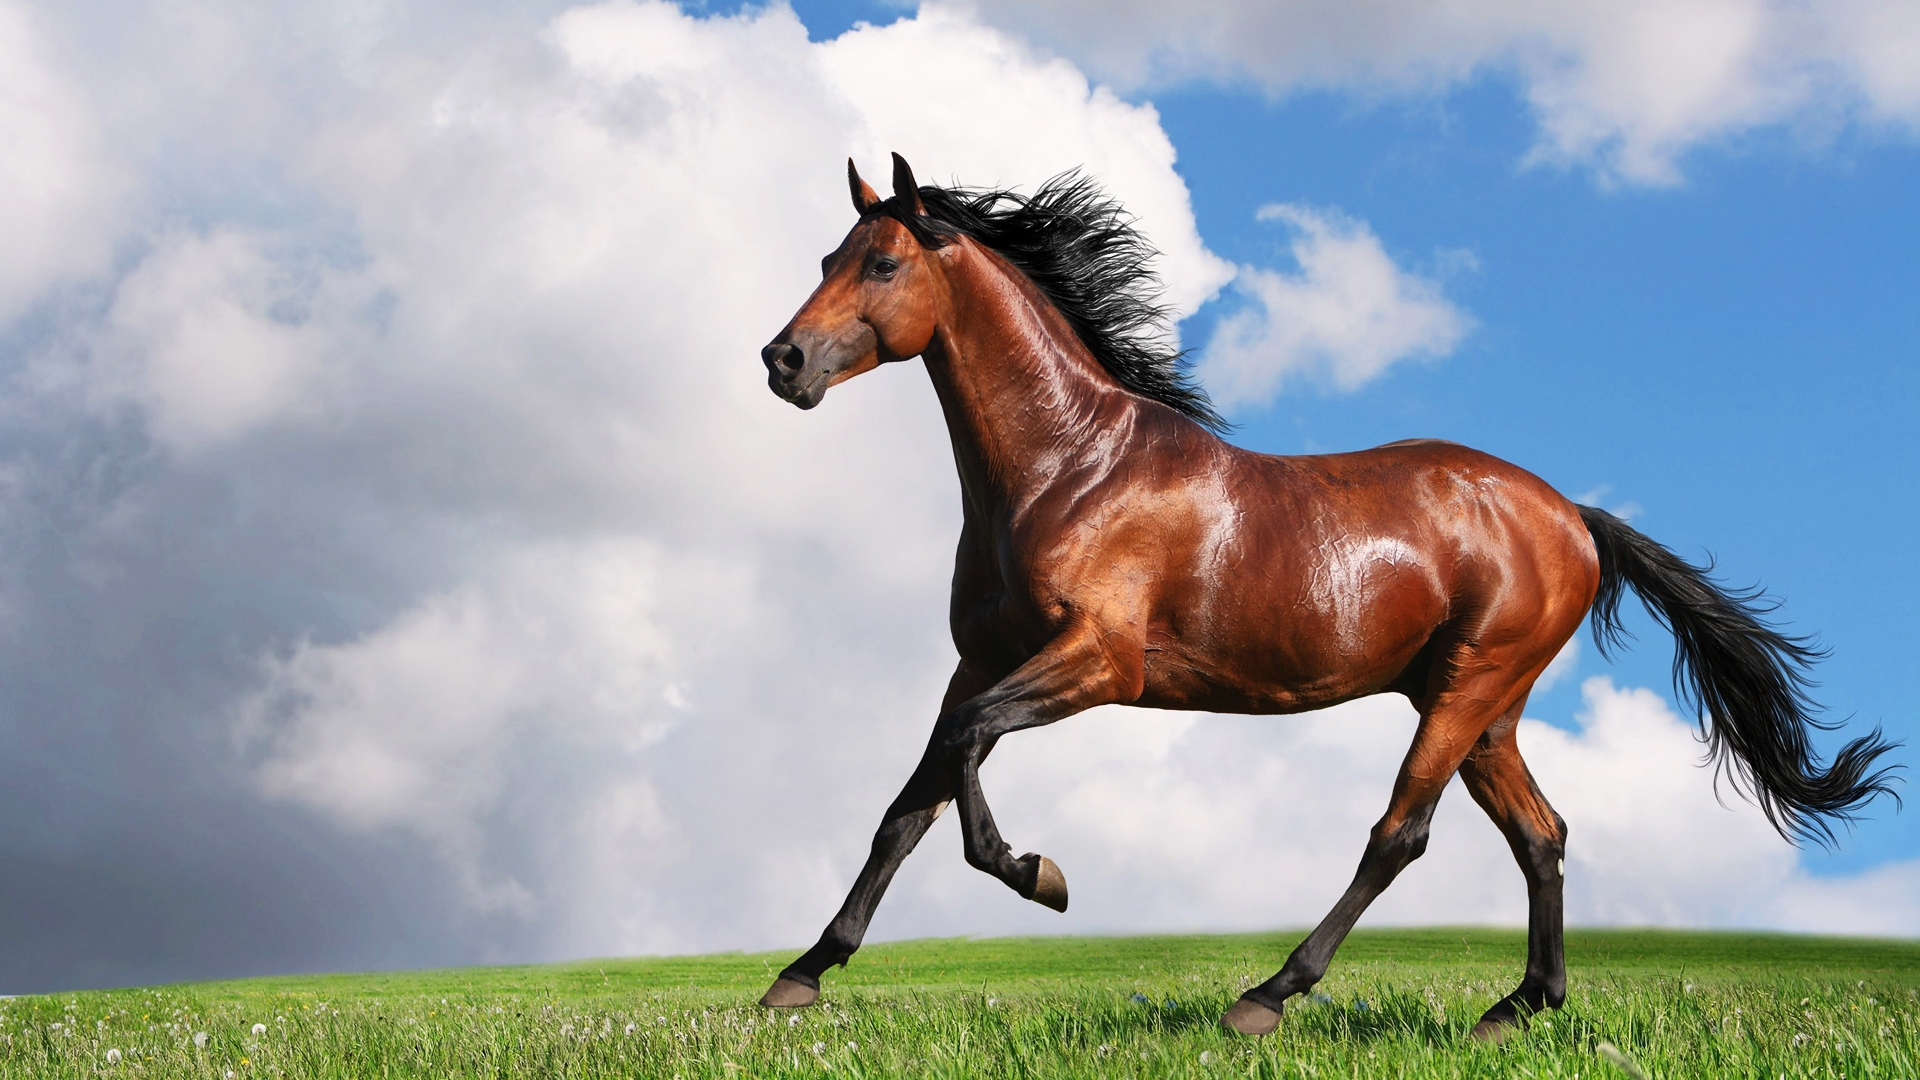 Horse Backgrounds on Wallpapers Vista